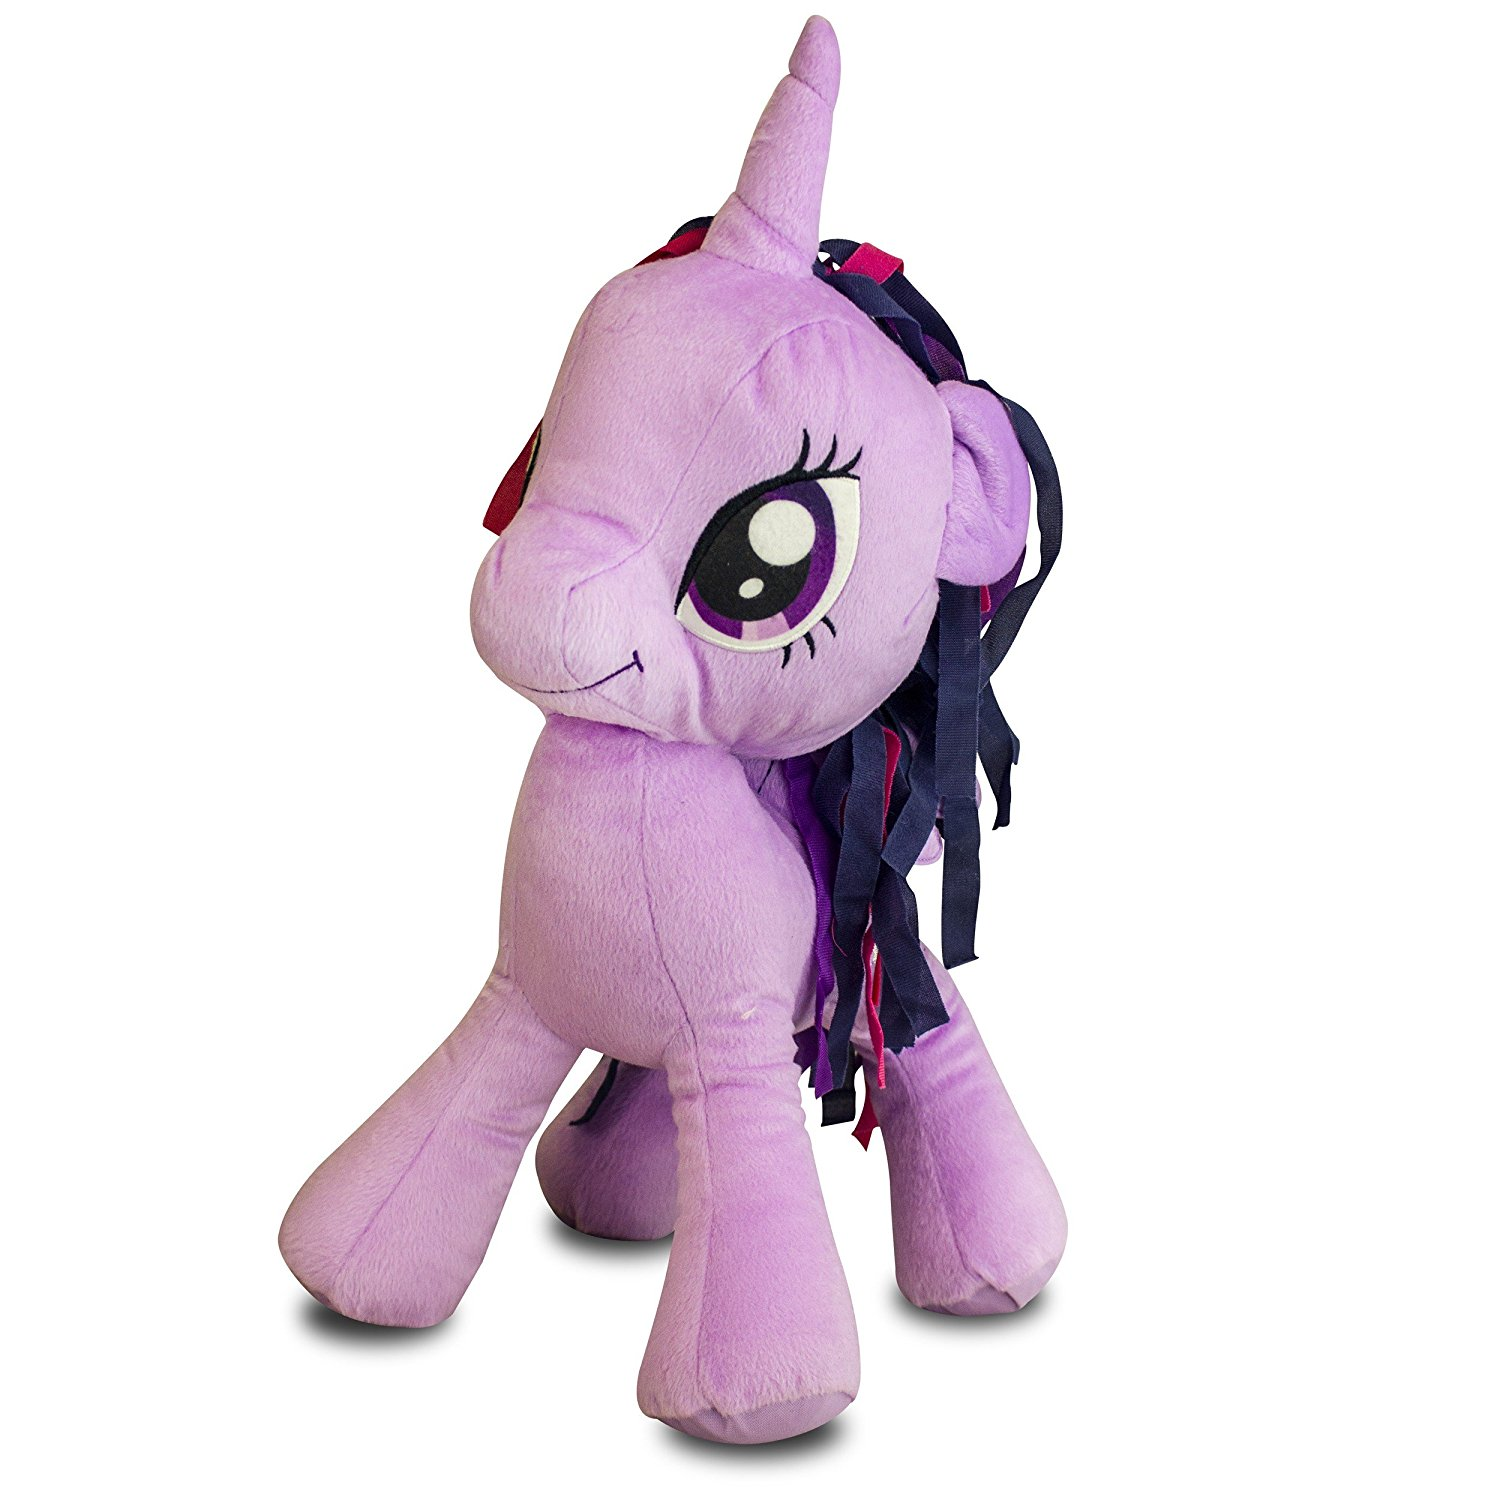 My Little Pony Sparkle Plush 16in Pillow, Soft and Cuddly By O3 Ship from US